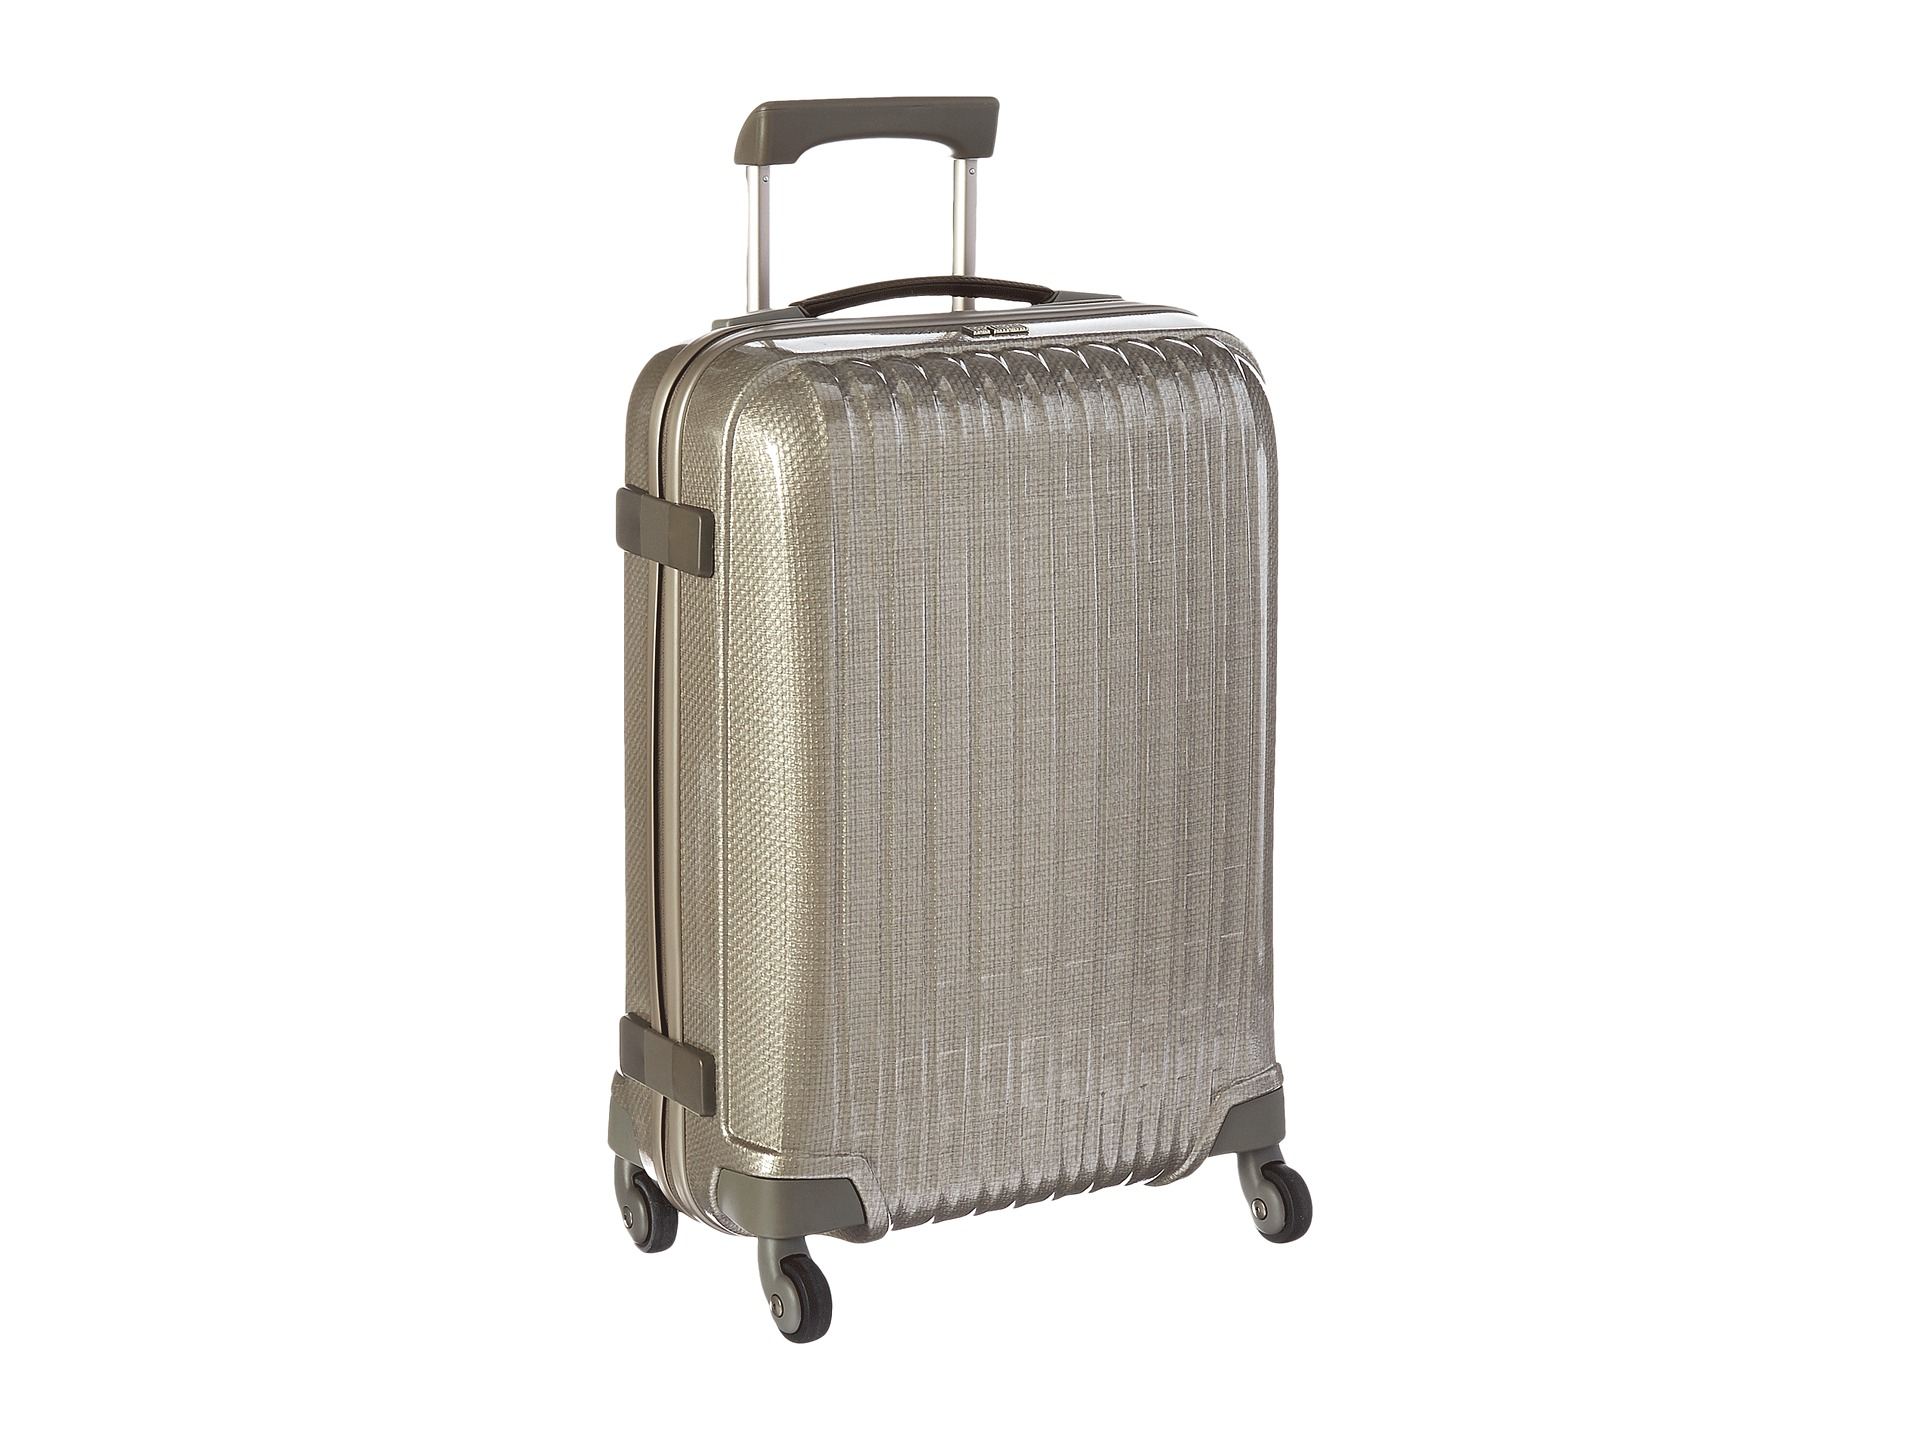 hartmann luggage case report Results 1 - 36 of 46  hartmann herringbone luxe softside shoulder bag  throughout the history of  hartmann luggage, they have strived to make sure their.